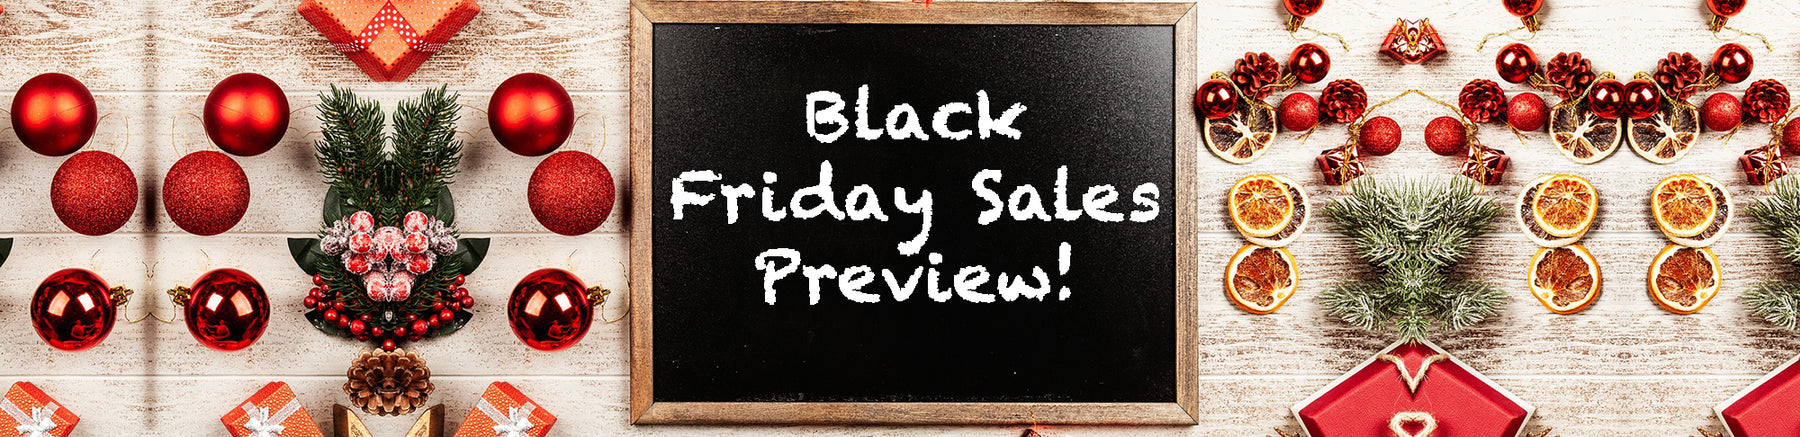 Black Friday Sales Preview!